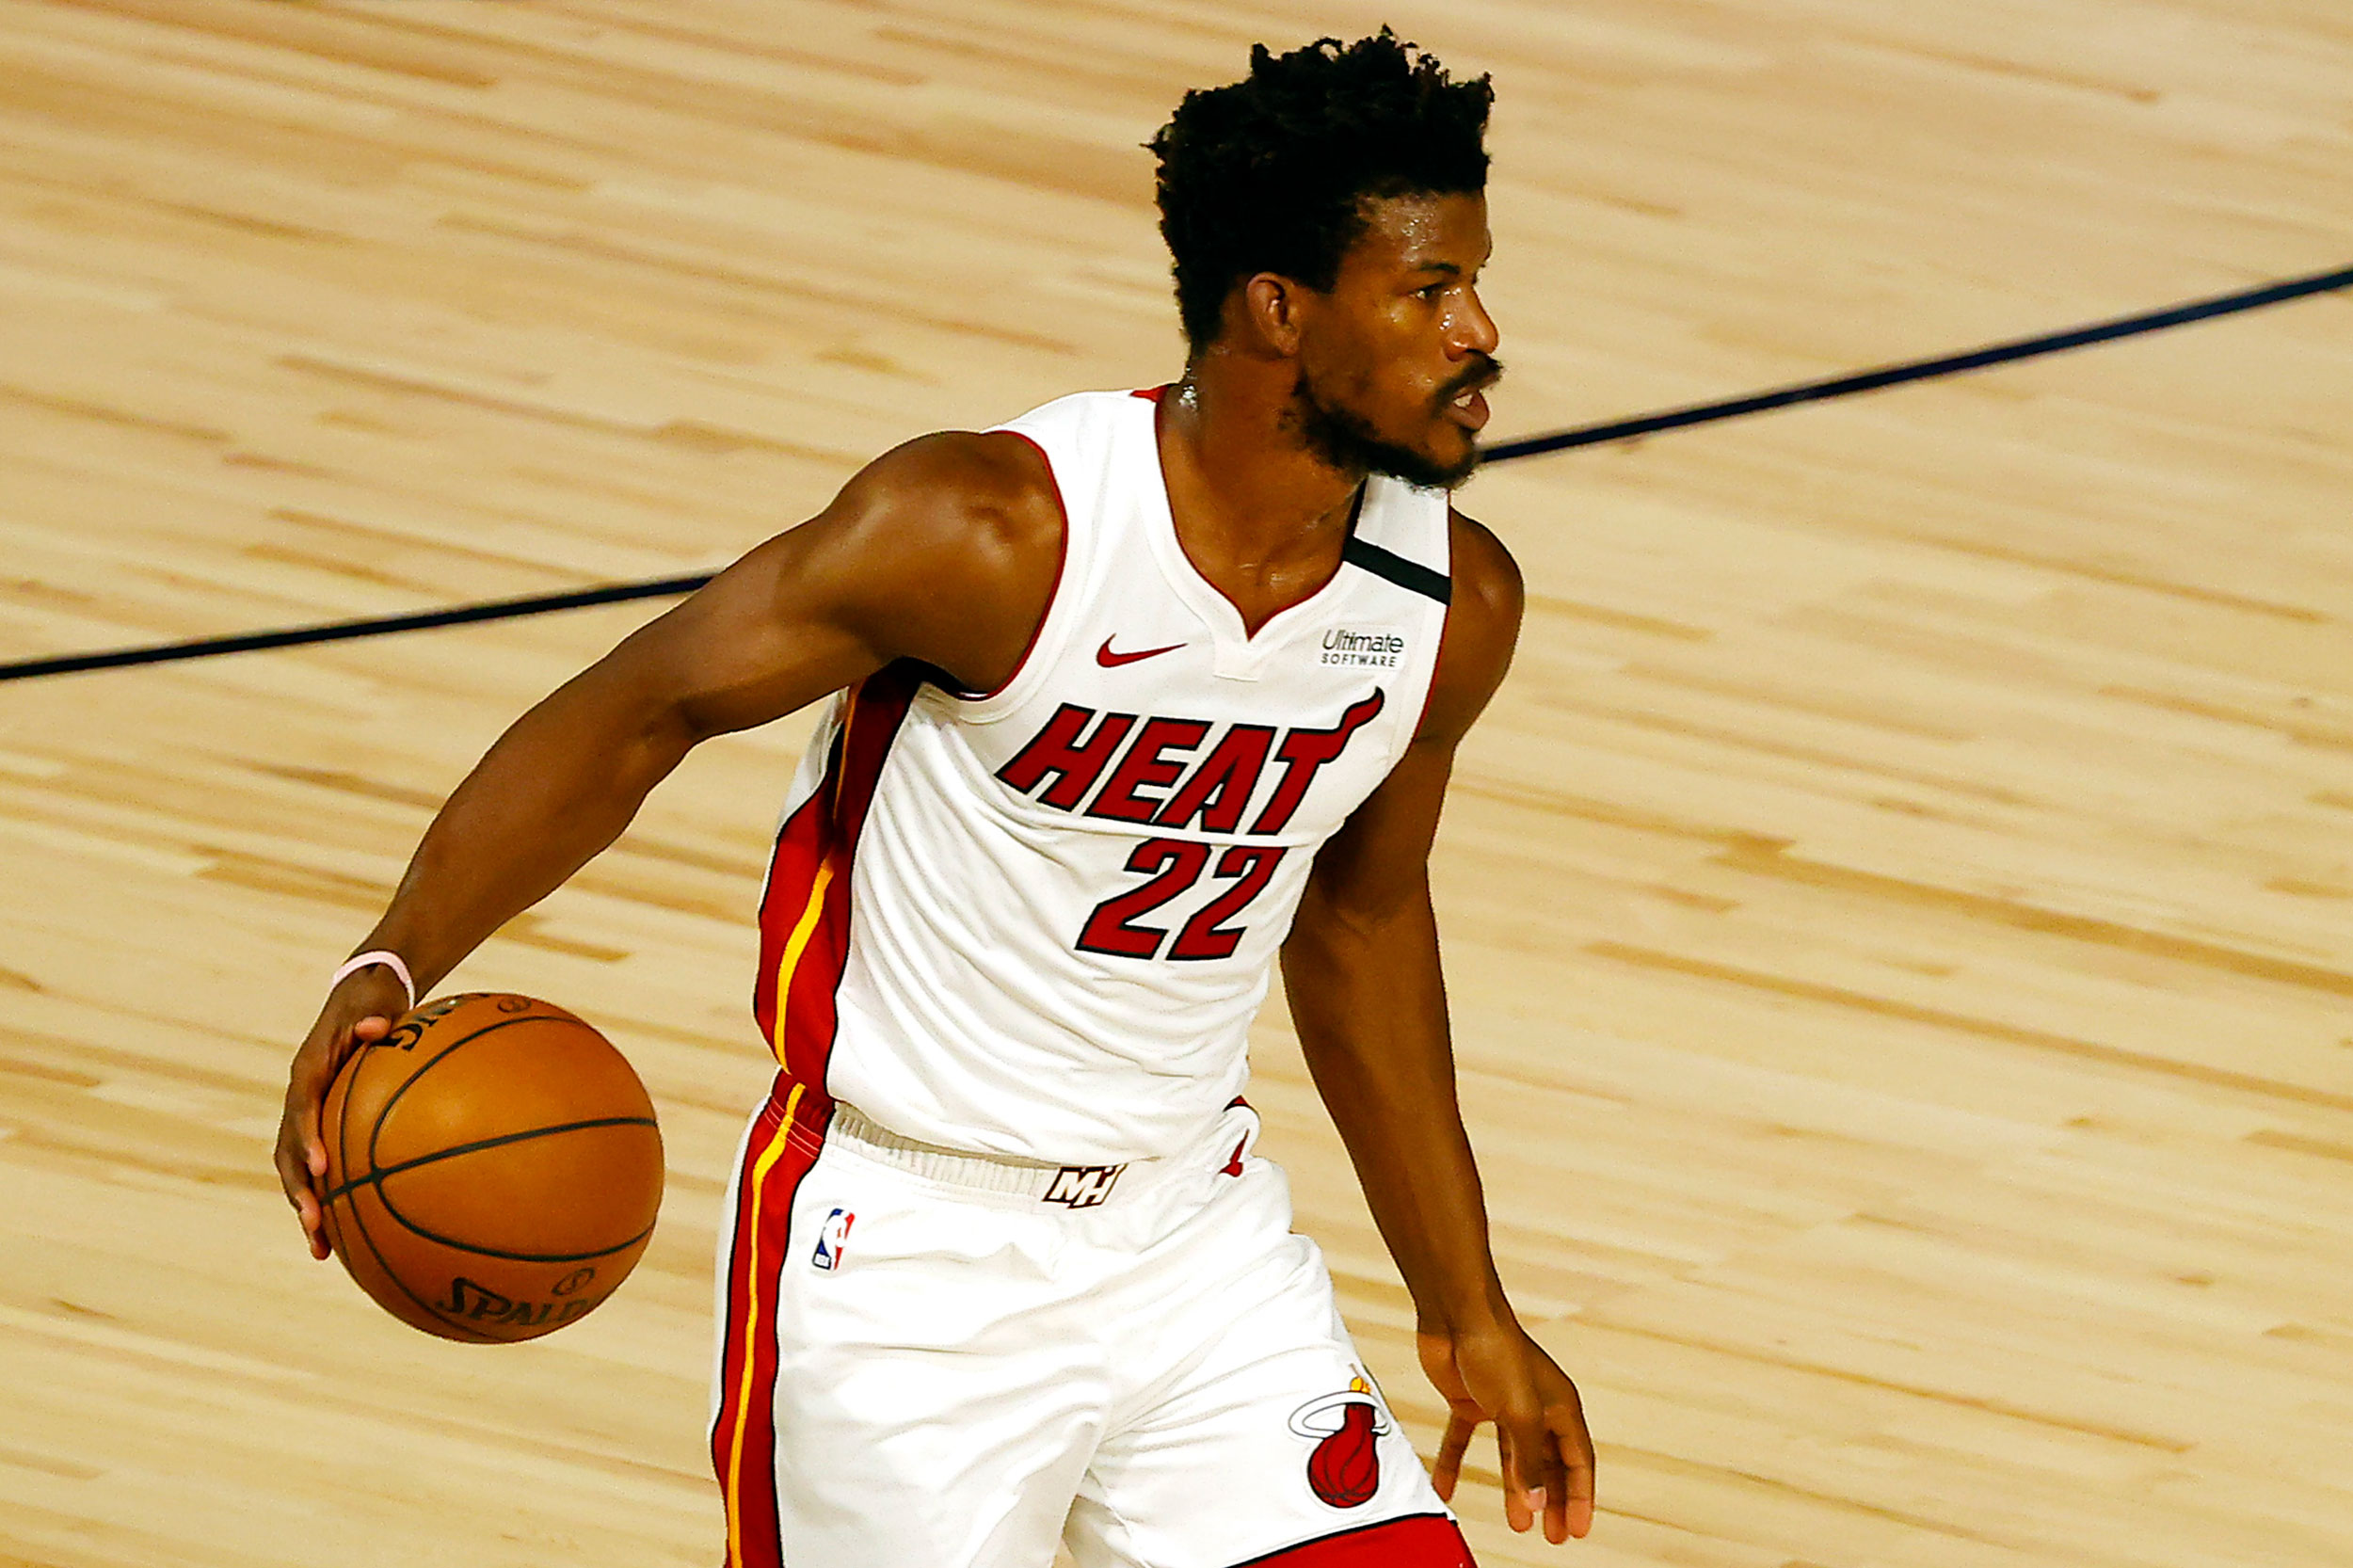 Jimmy Butler forced to change nameless jersey prior to tip-off against Denver Nuggets